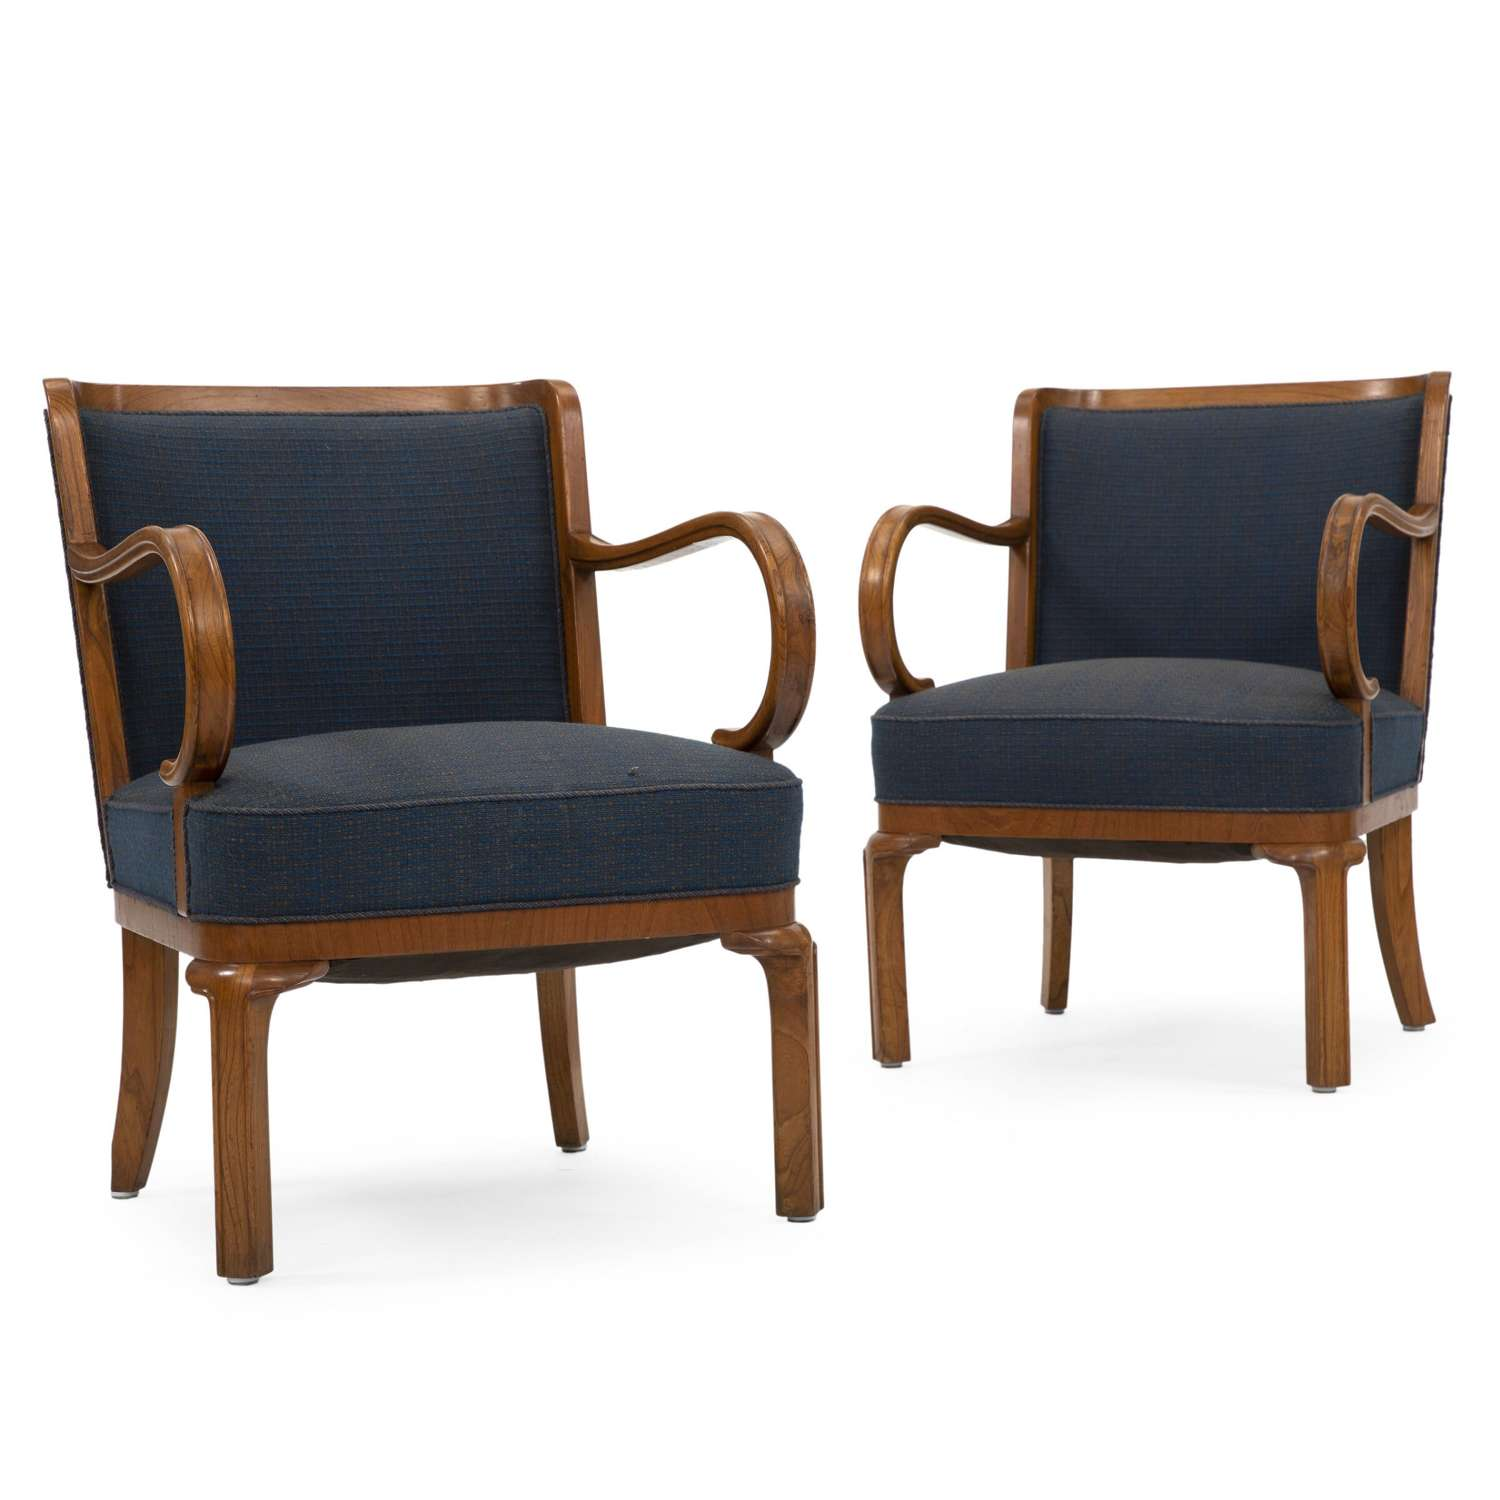 Pair of 1930s Danish Elm Armchairs by Lysberg and Hansen